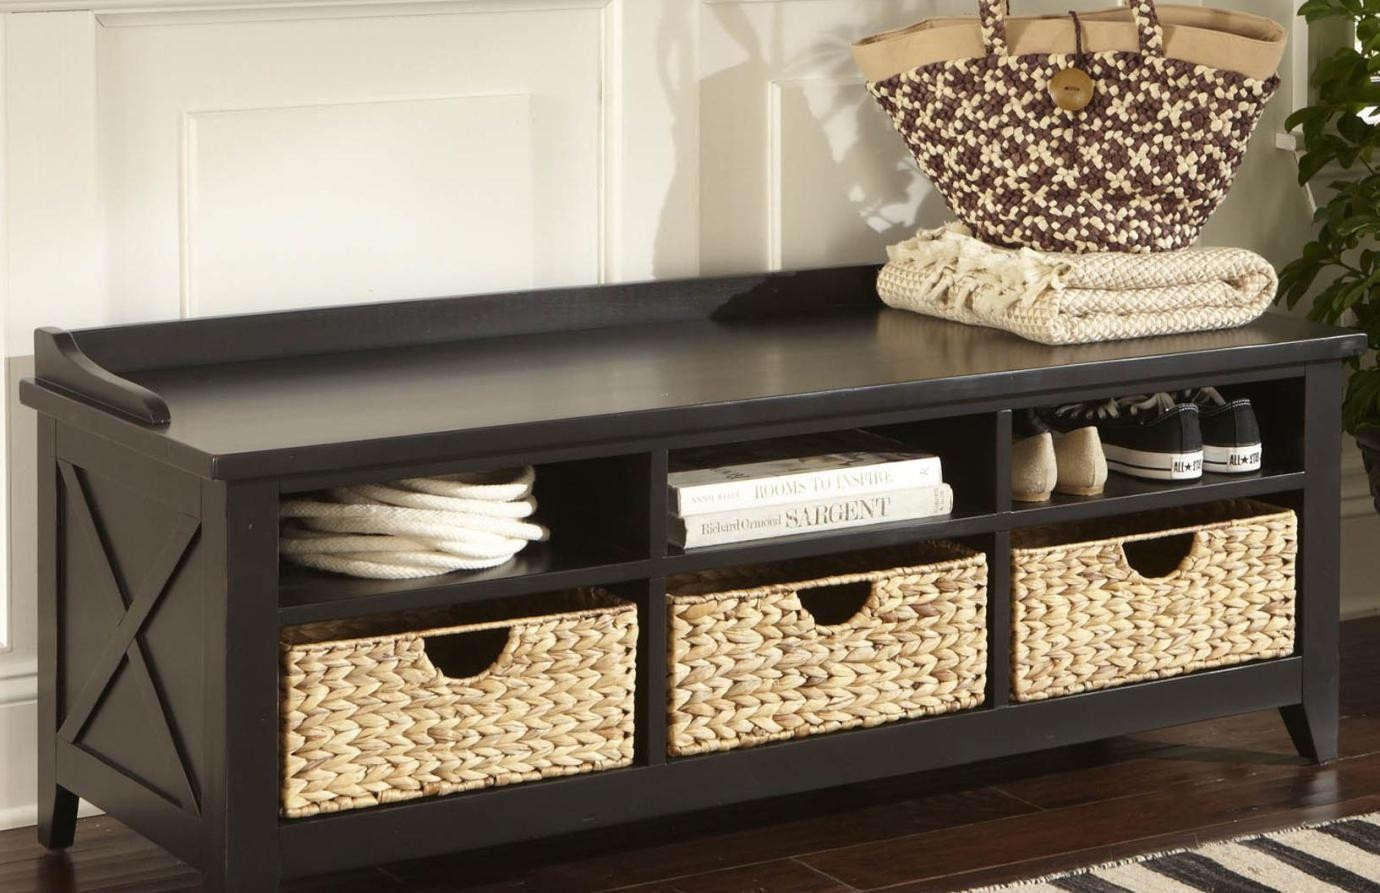 Best ideas about Shoe Benches Entryway . Save or Pin Sears Shoe Storage Bench Now.